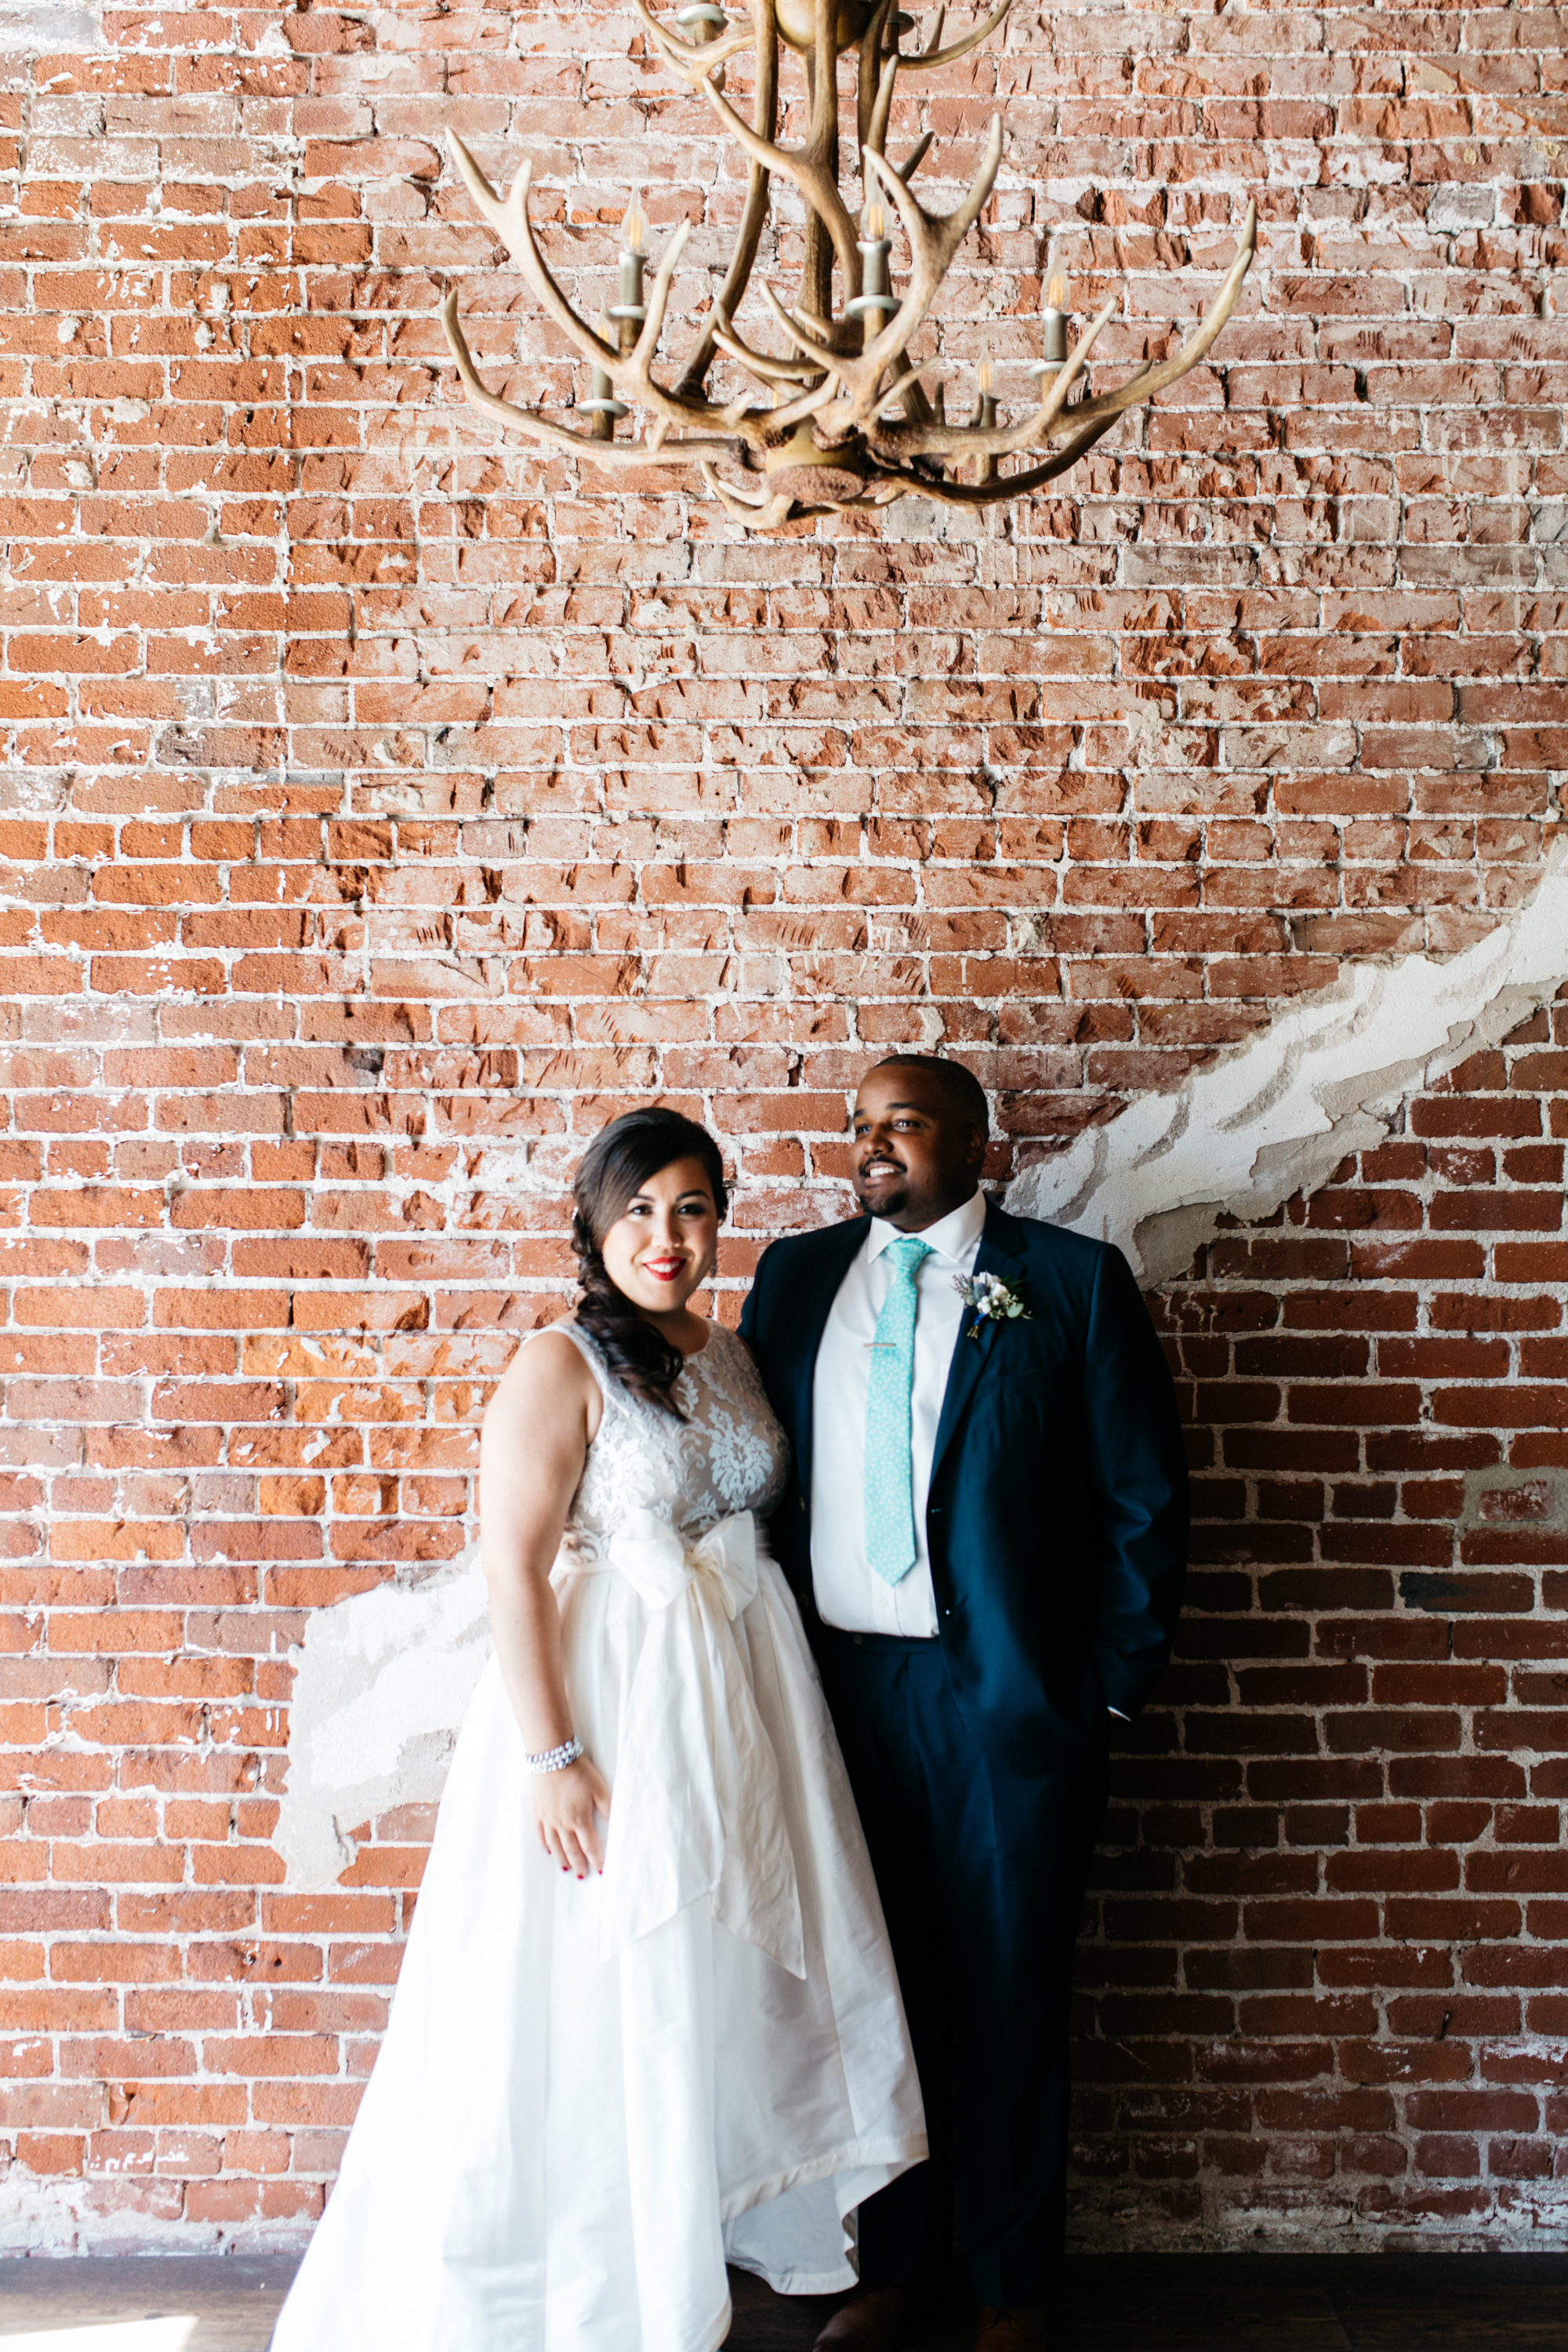 SamErica Studios - Los Angeles Wedding Photographer - The Loft on Pine-39.jpg